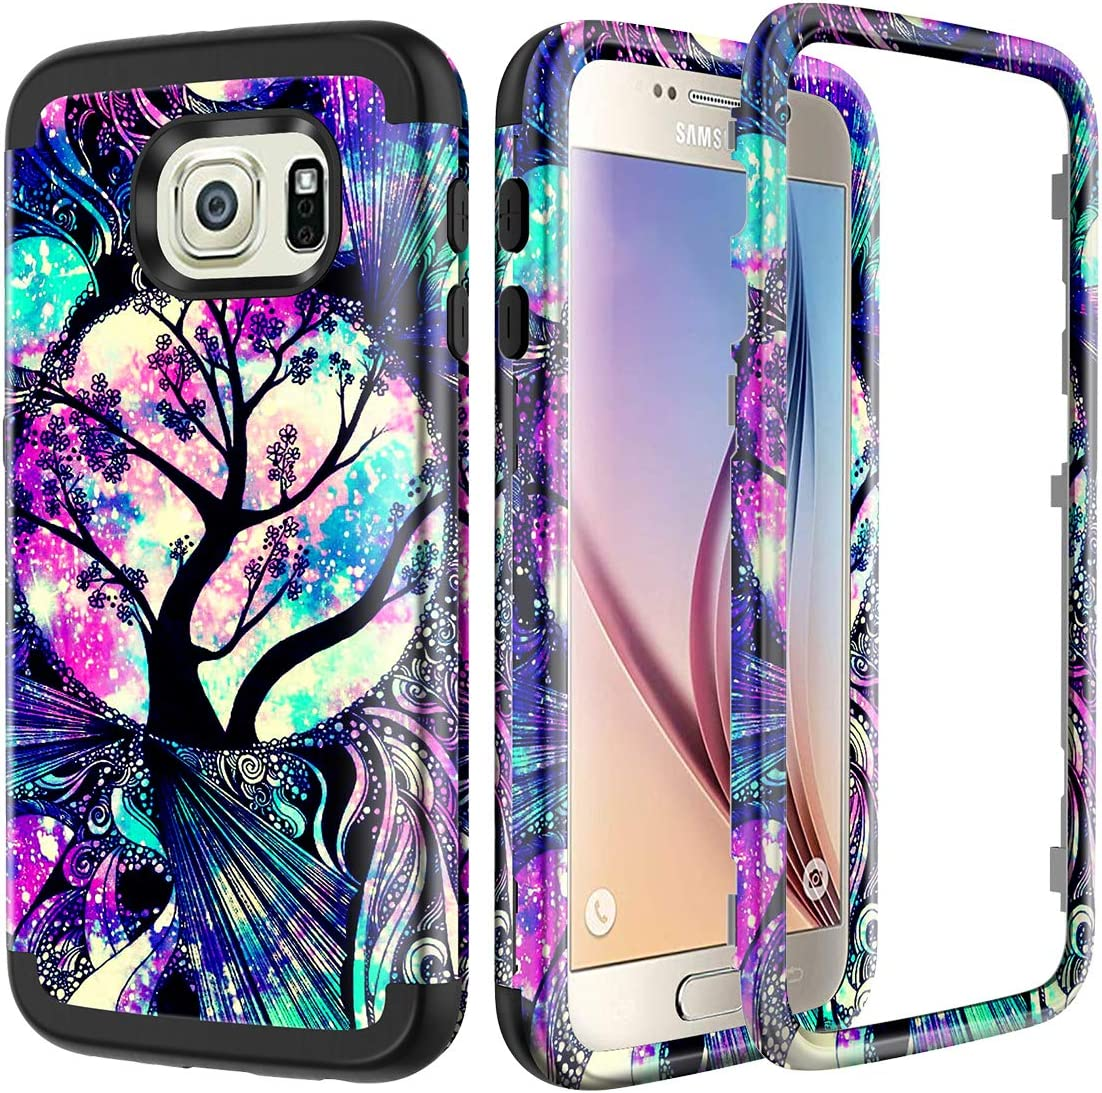 Lamcase for Galaxy S6 Case Shockproof Dual Layer Hard PC & Flexible Silicone High Impact Durable Bumper Protective Case Cover Samsung Galaxy S6 G920, Life Tree